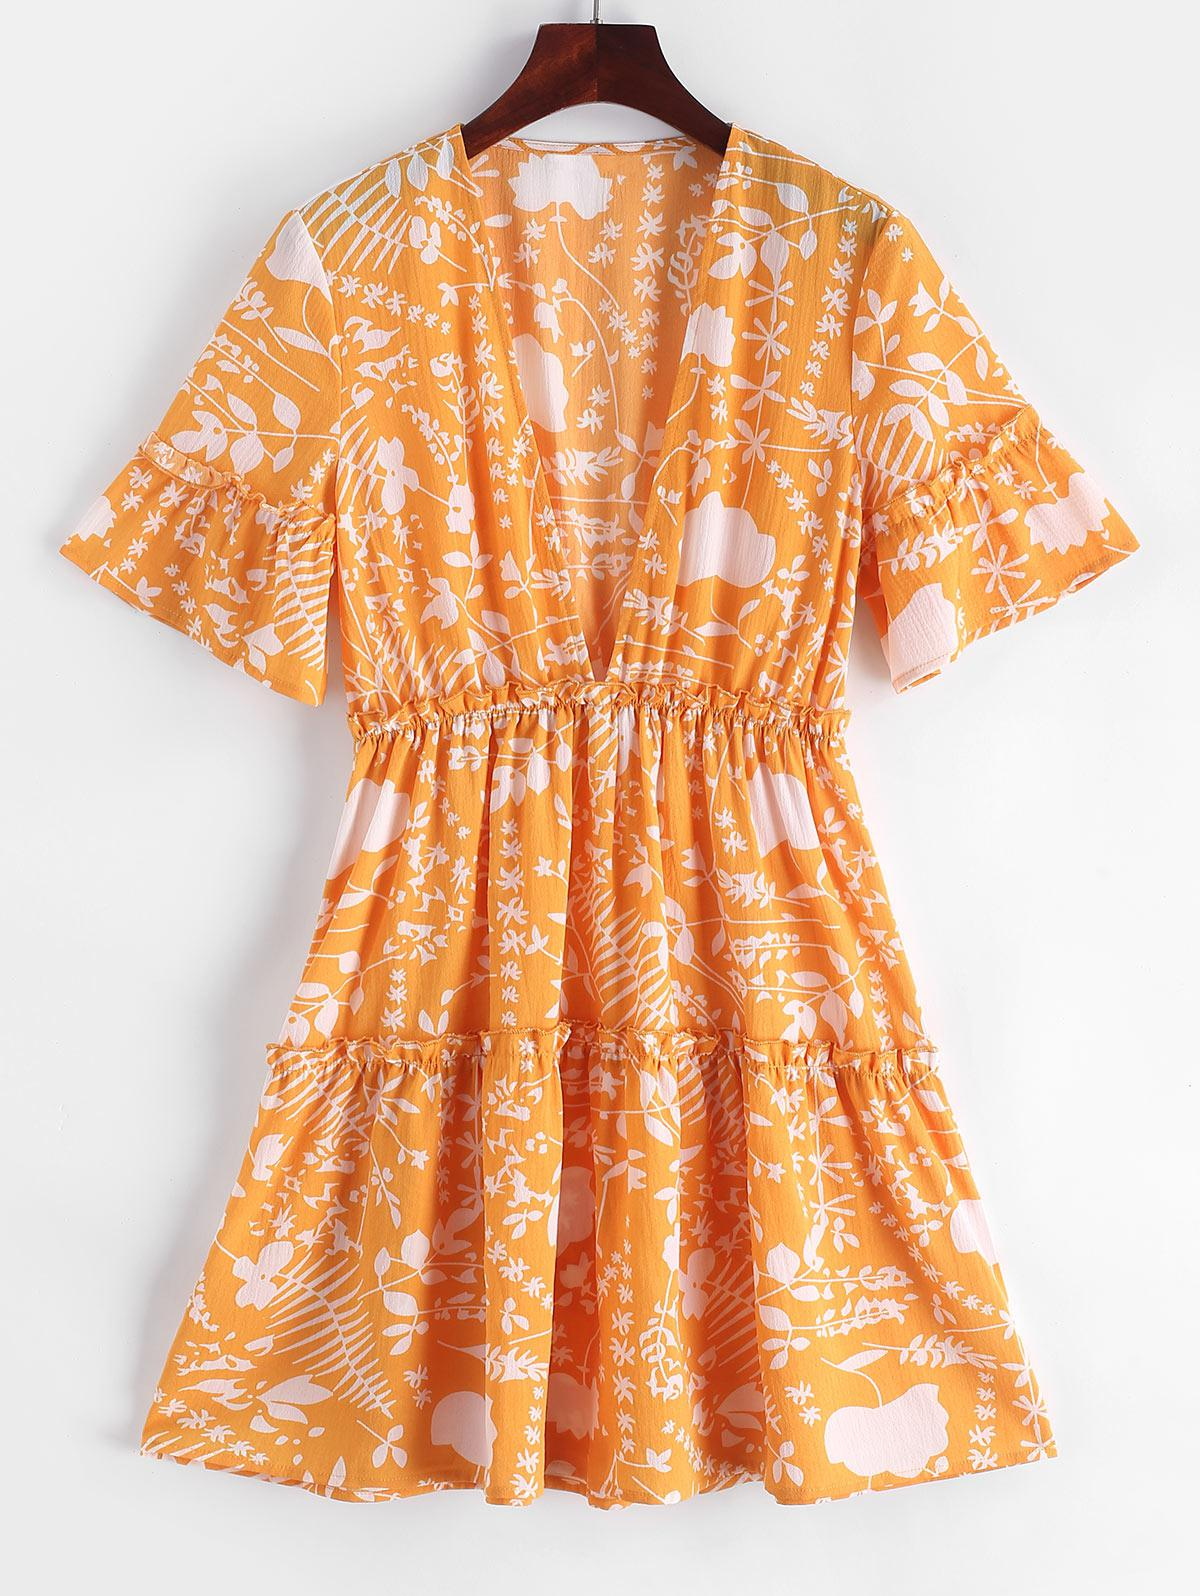 ZAFUL Low Cut Frilled Printed A Line Dress